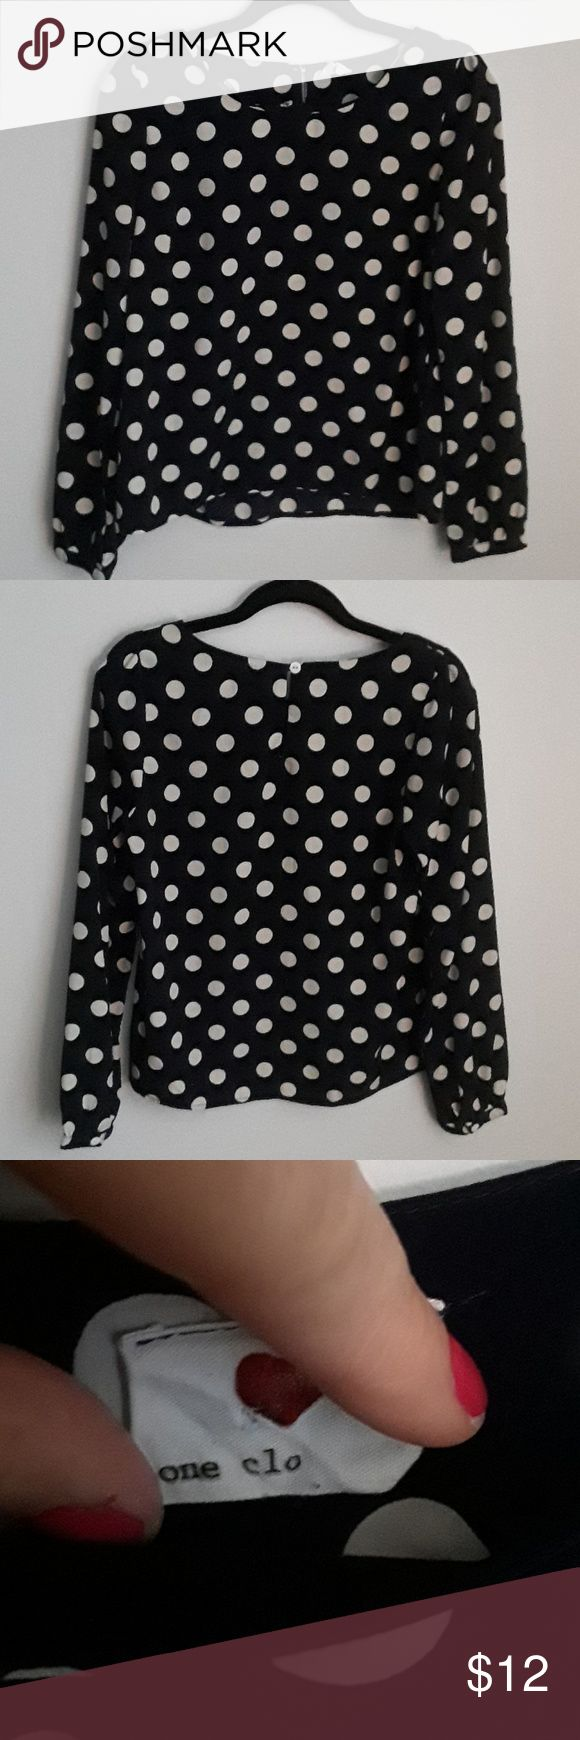 Forever 21 blouse Excellent condition super soft drapes nicely on frame Navy with cream polka dot puckered sleeve at shoulder can tuck in or leave draped out no rips or stains smoke-free home Forever 21 Tops Blouses